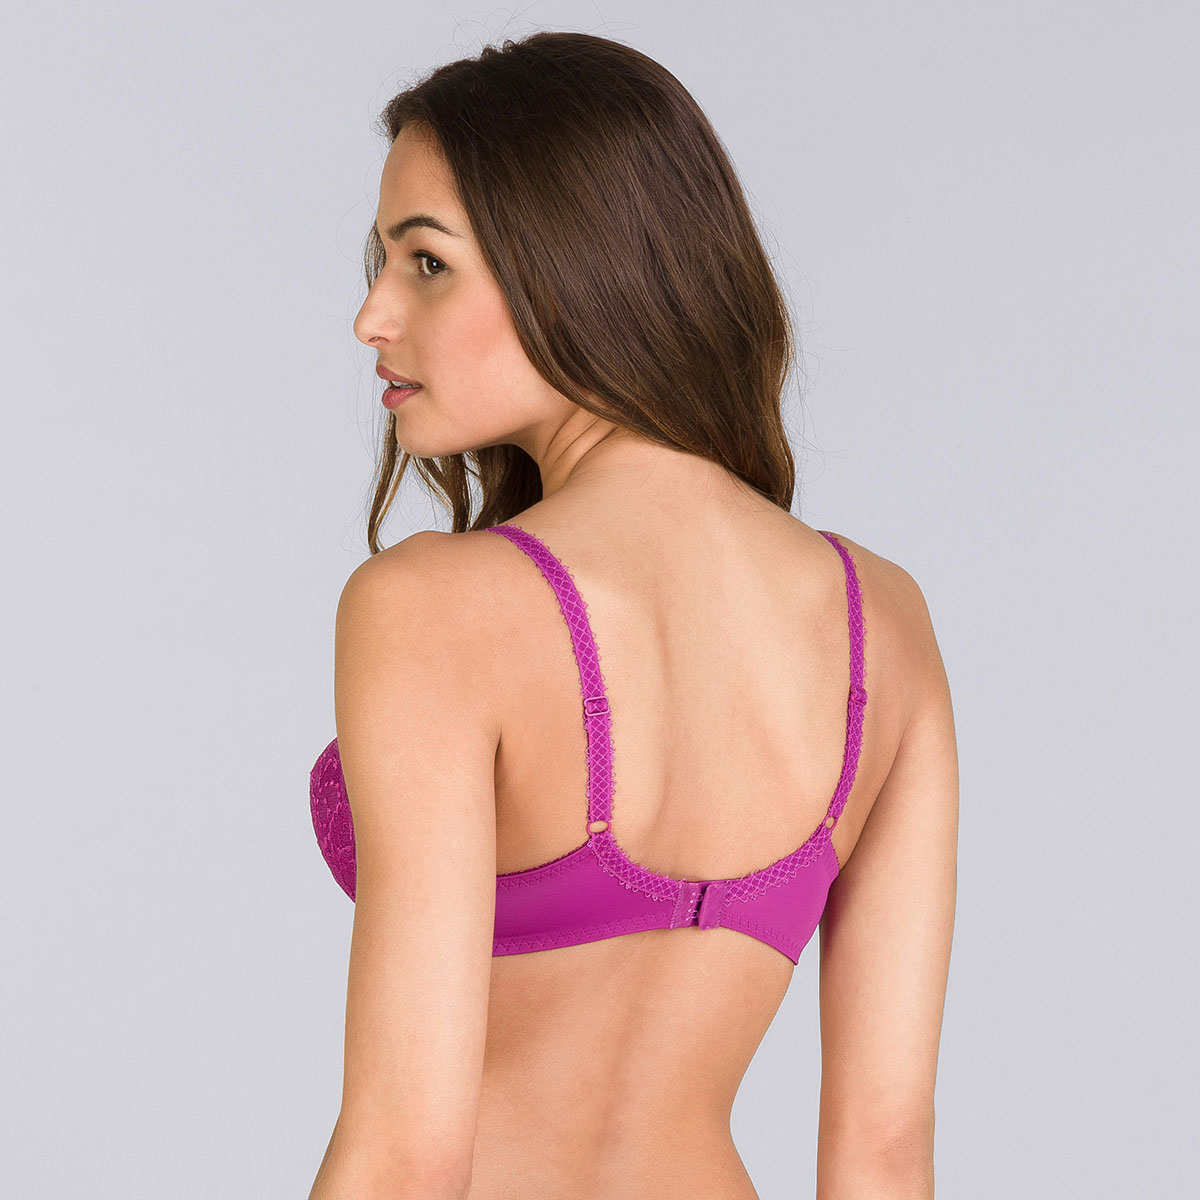 Purple fuchsia full cup bra - Flower Elegance-PLAYTEX